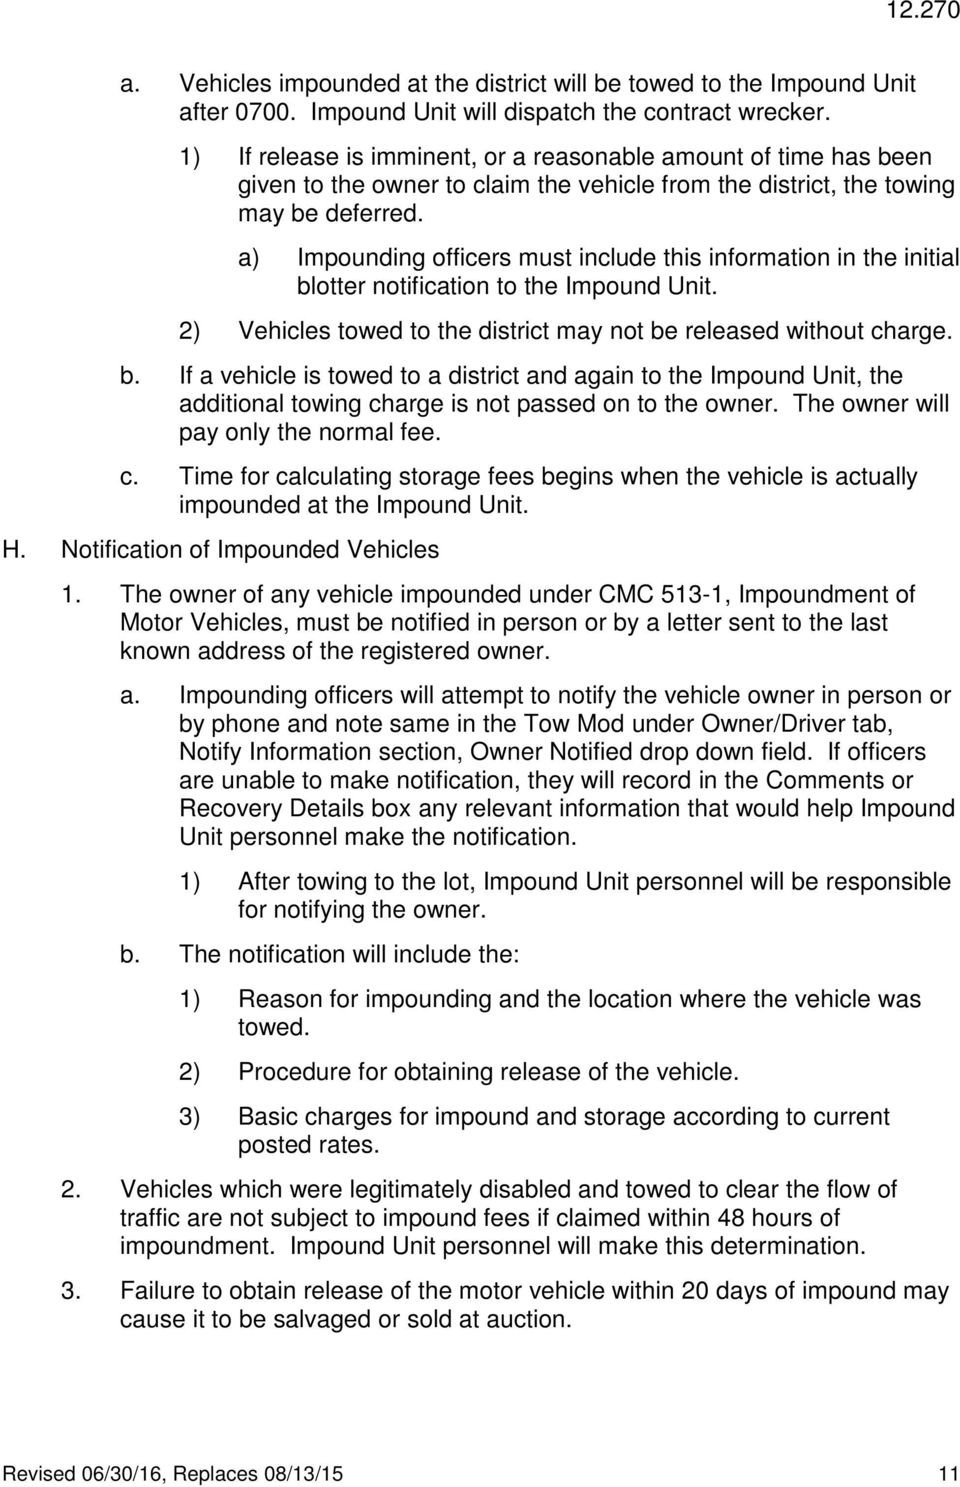 a) Impounding officers must include this information in the initial blotter notification to the Impound Unit. 2) Vehicles towed to the district may not be released without charge. b. If a vehicle is towed to a district and again to the Impound Unit, the additional towing charge is not passed on to the owner.